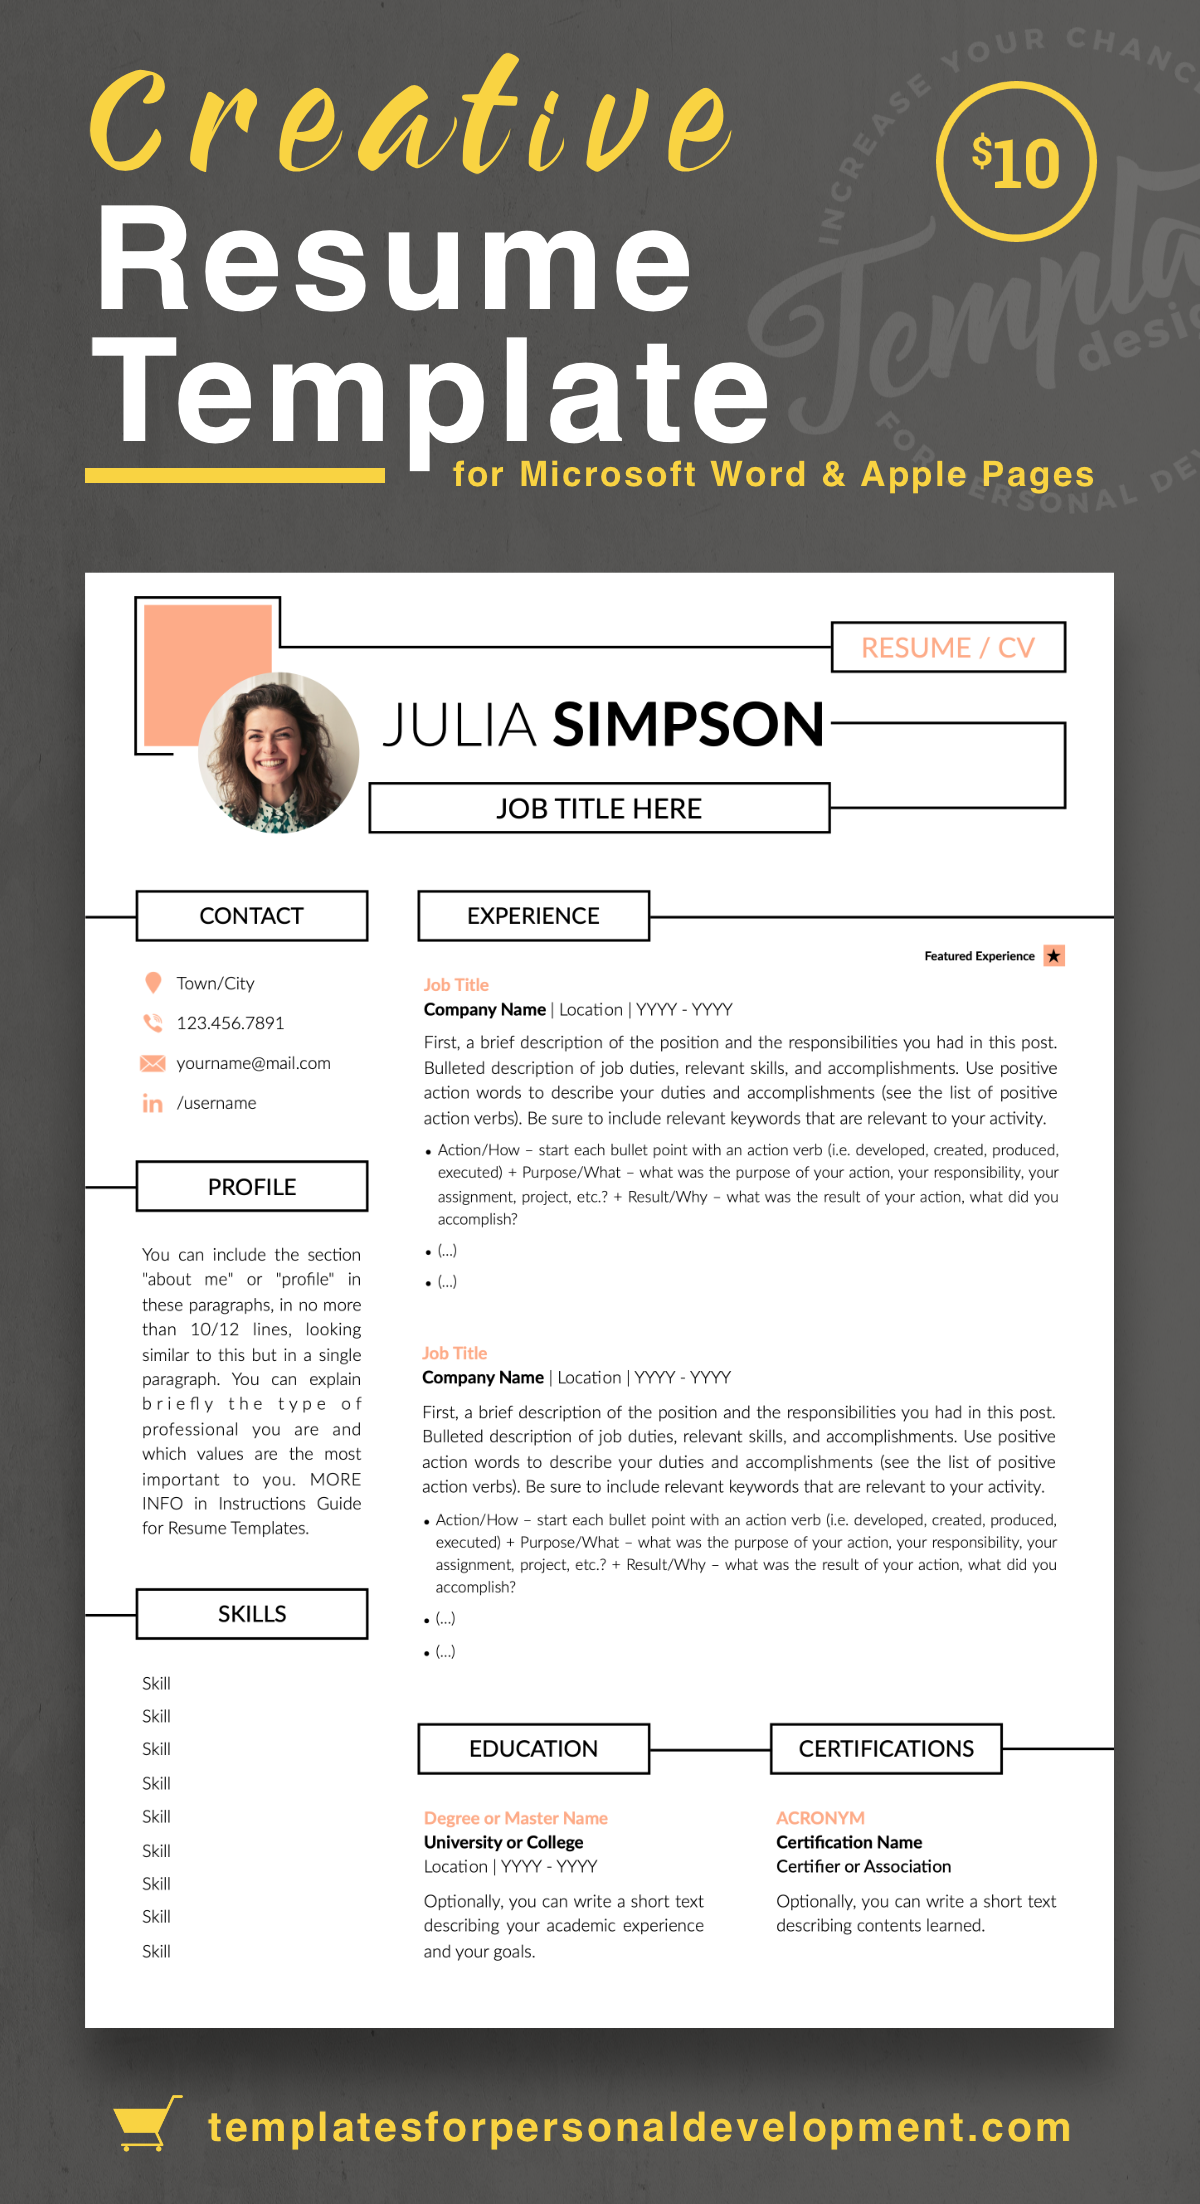 Julia Simpson Creative Resume Cv Template For Word Pages Us Letter A4 Files 1 2 3 Page Resume Version Cover Letter References Cover Letter W Resume Templates Resume Template Resume